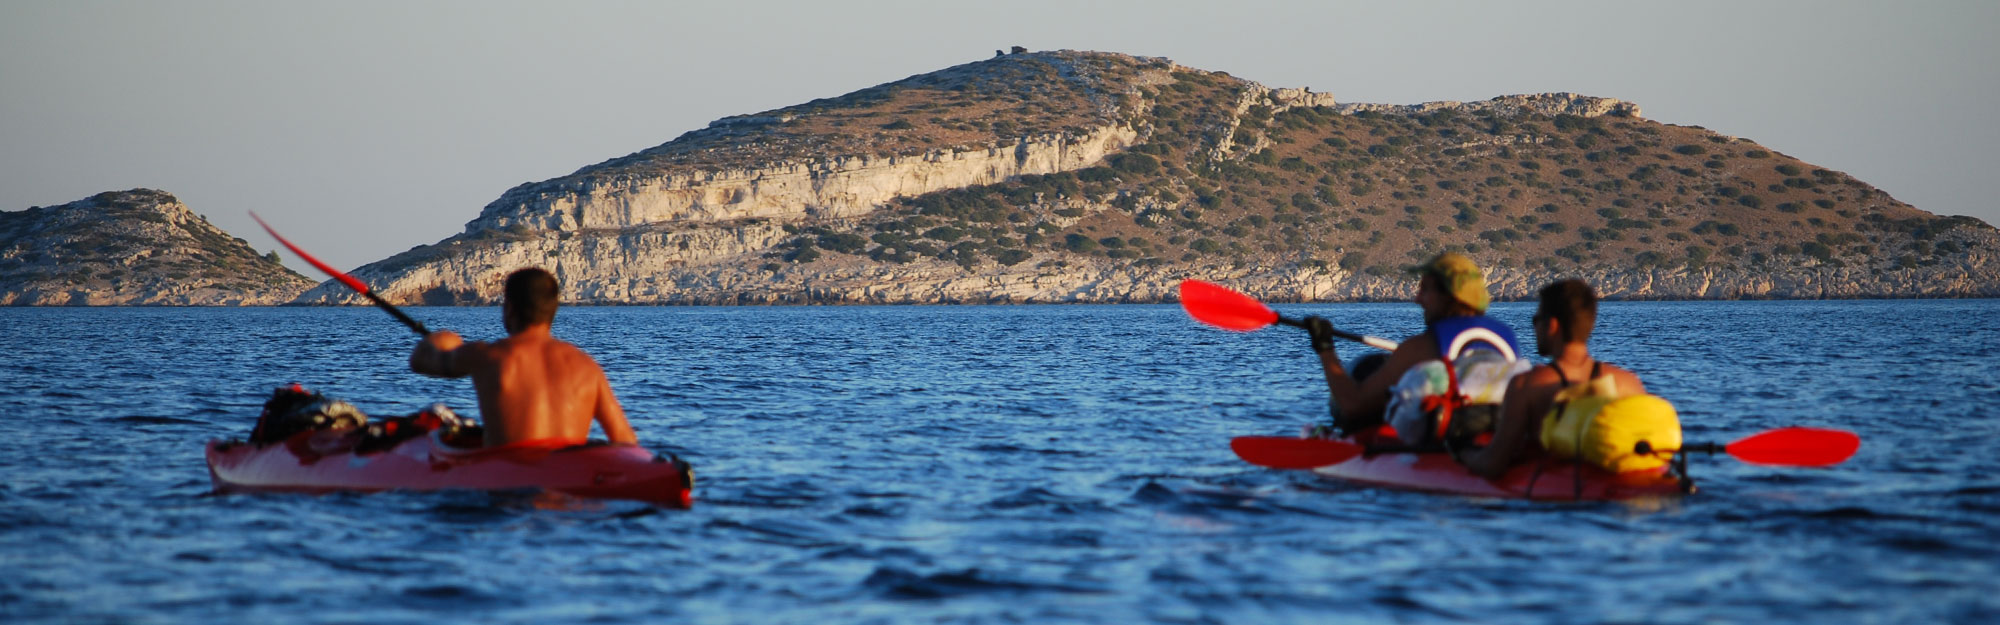 Sea kayaking adventure